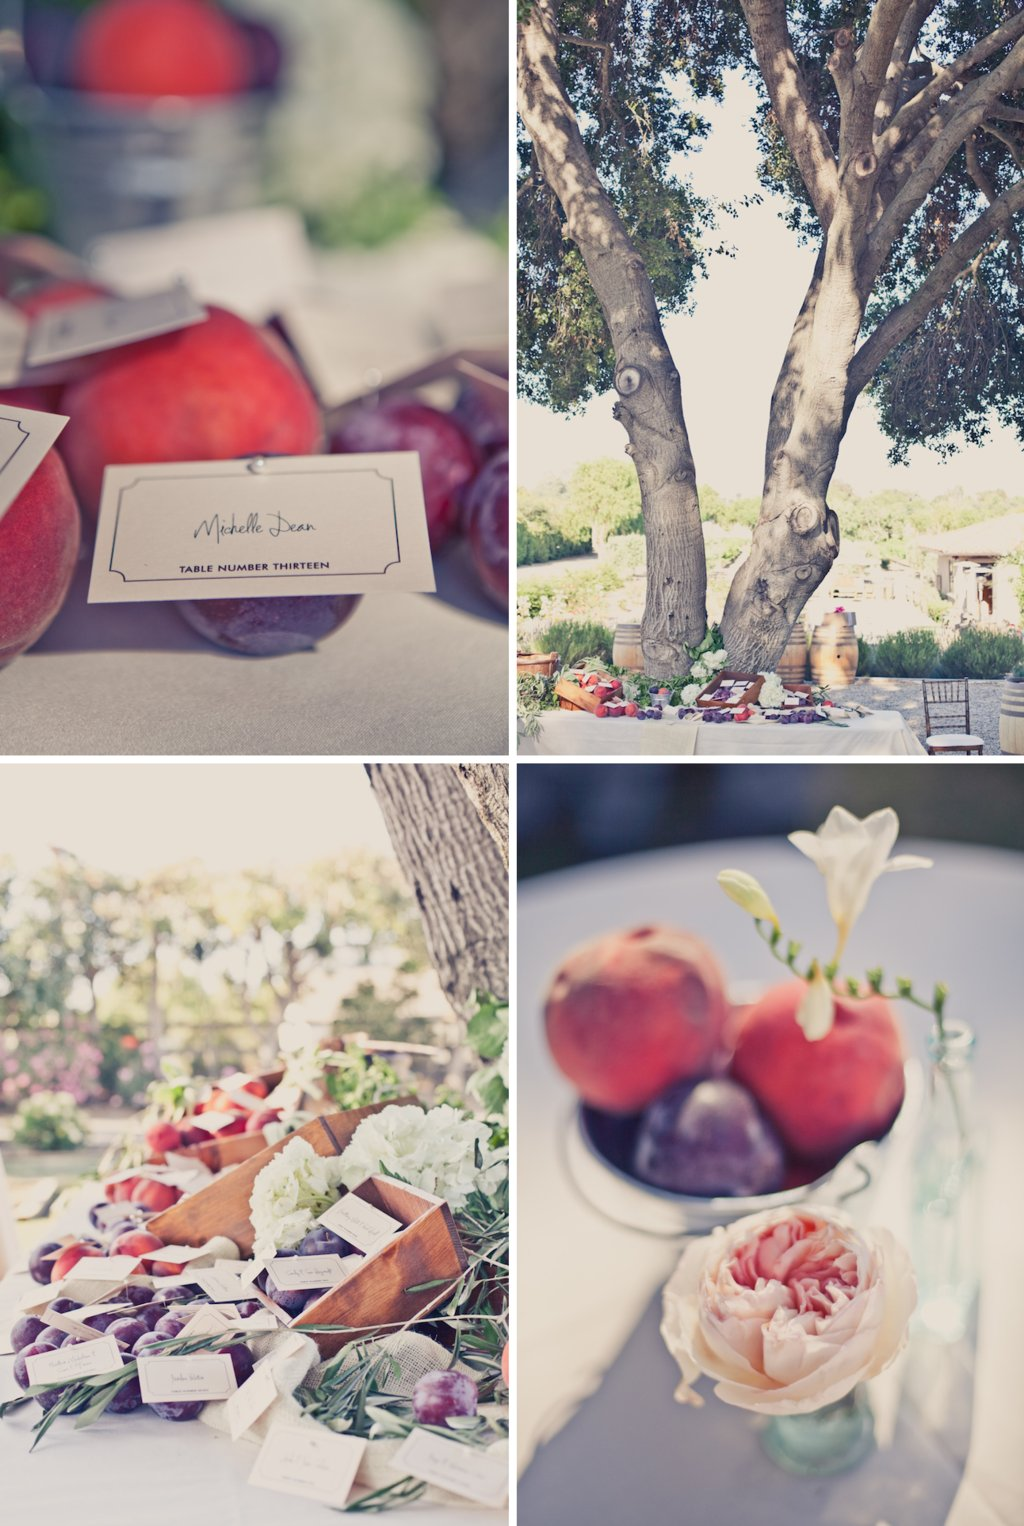 Elegant-outdoor-weddings-peach-lavender-wedding-colors-fruit-infused-decor.full